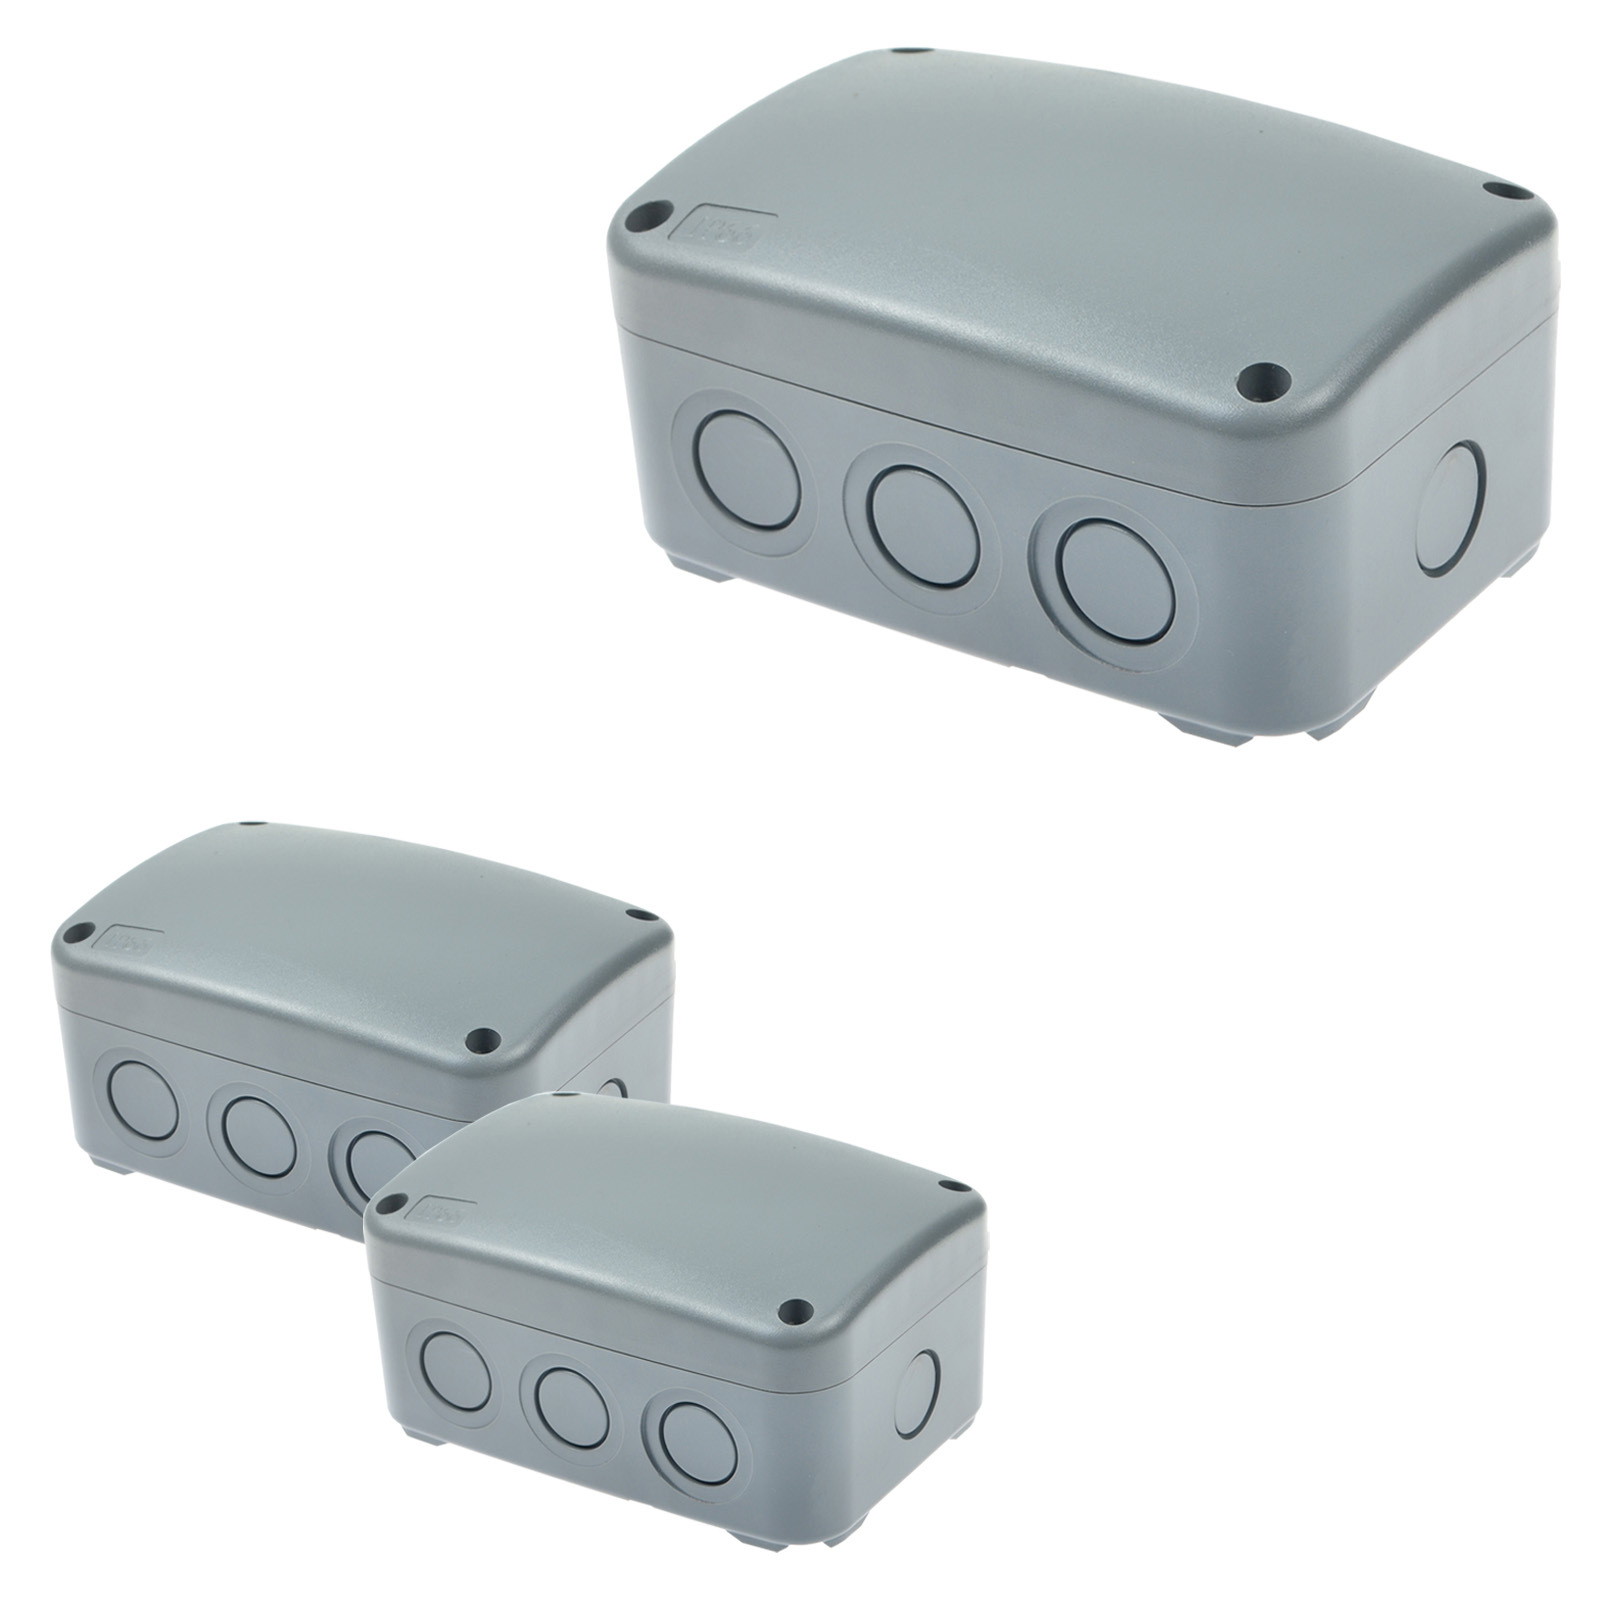 3 Pk Waterproof Junction Box Ip66 Cable Wire Protection Outdoor Wiring Weatherproof New